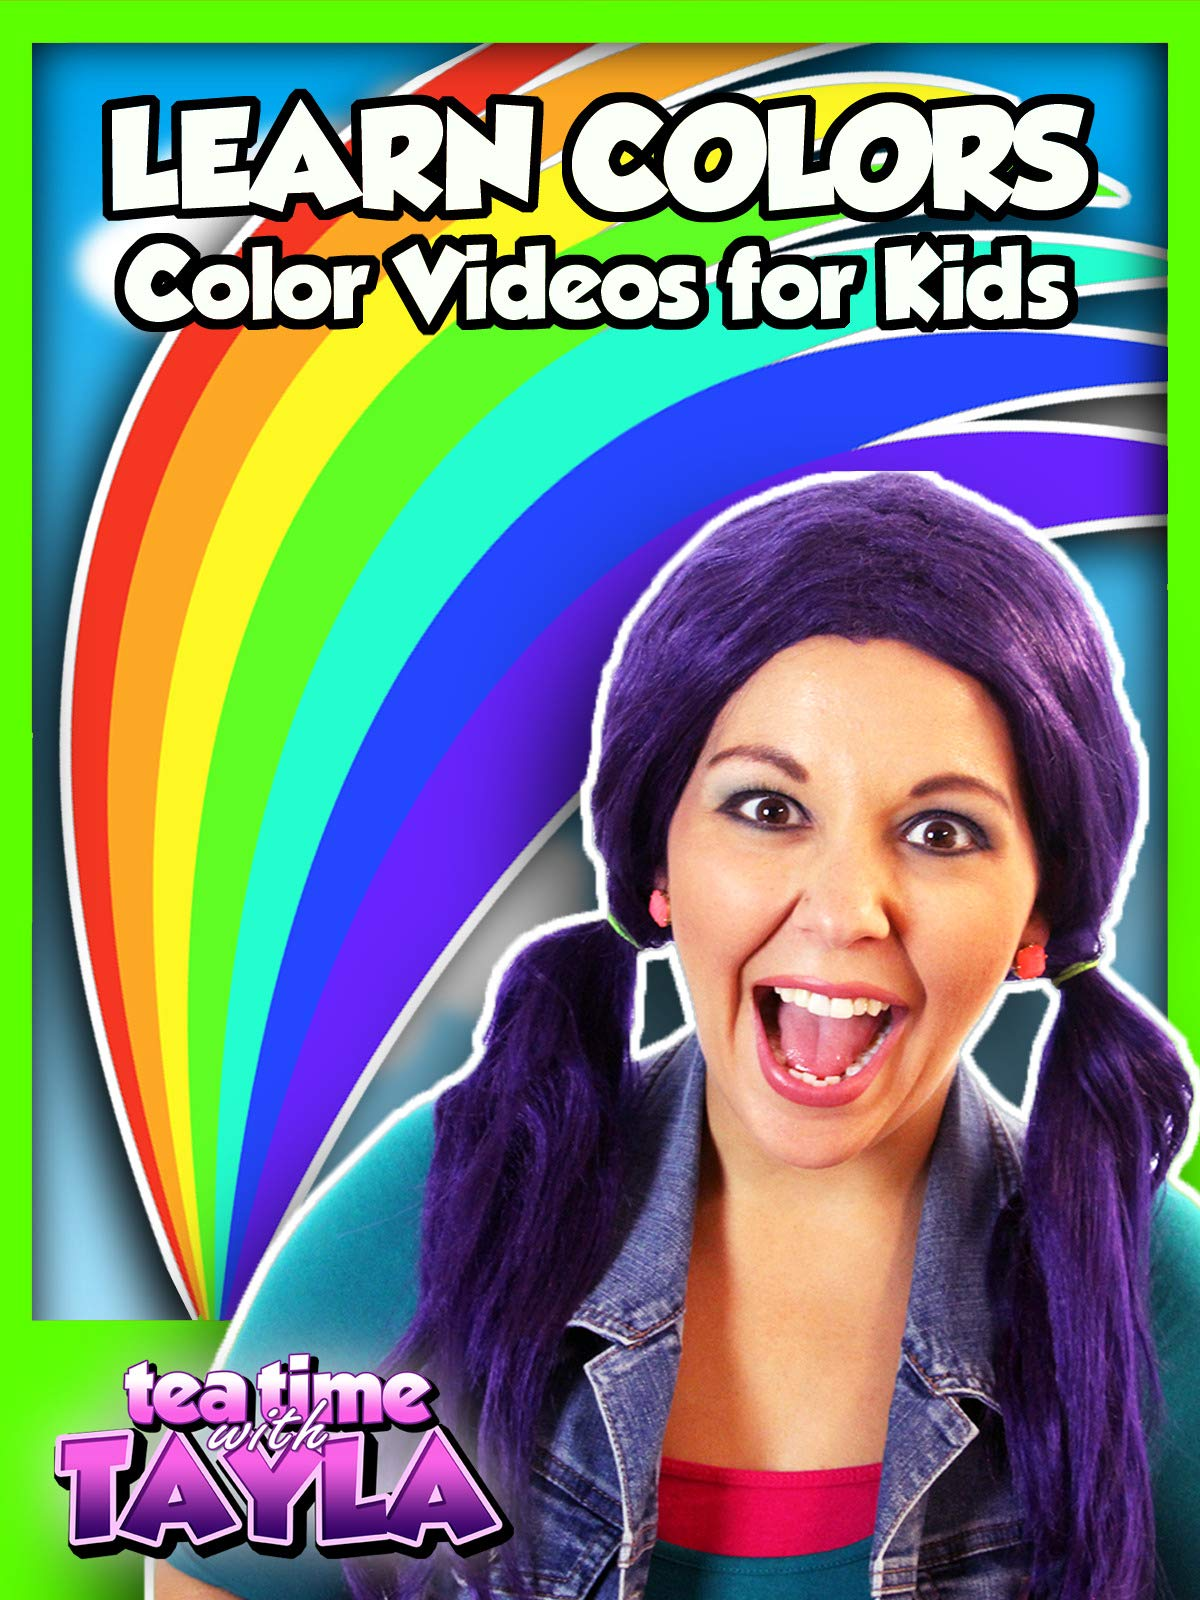 Tea Time with Tayla: Learn Colors - Color Videos for Kids